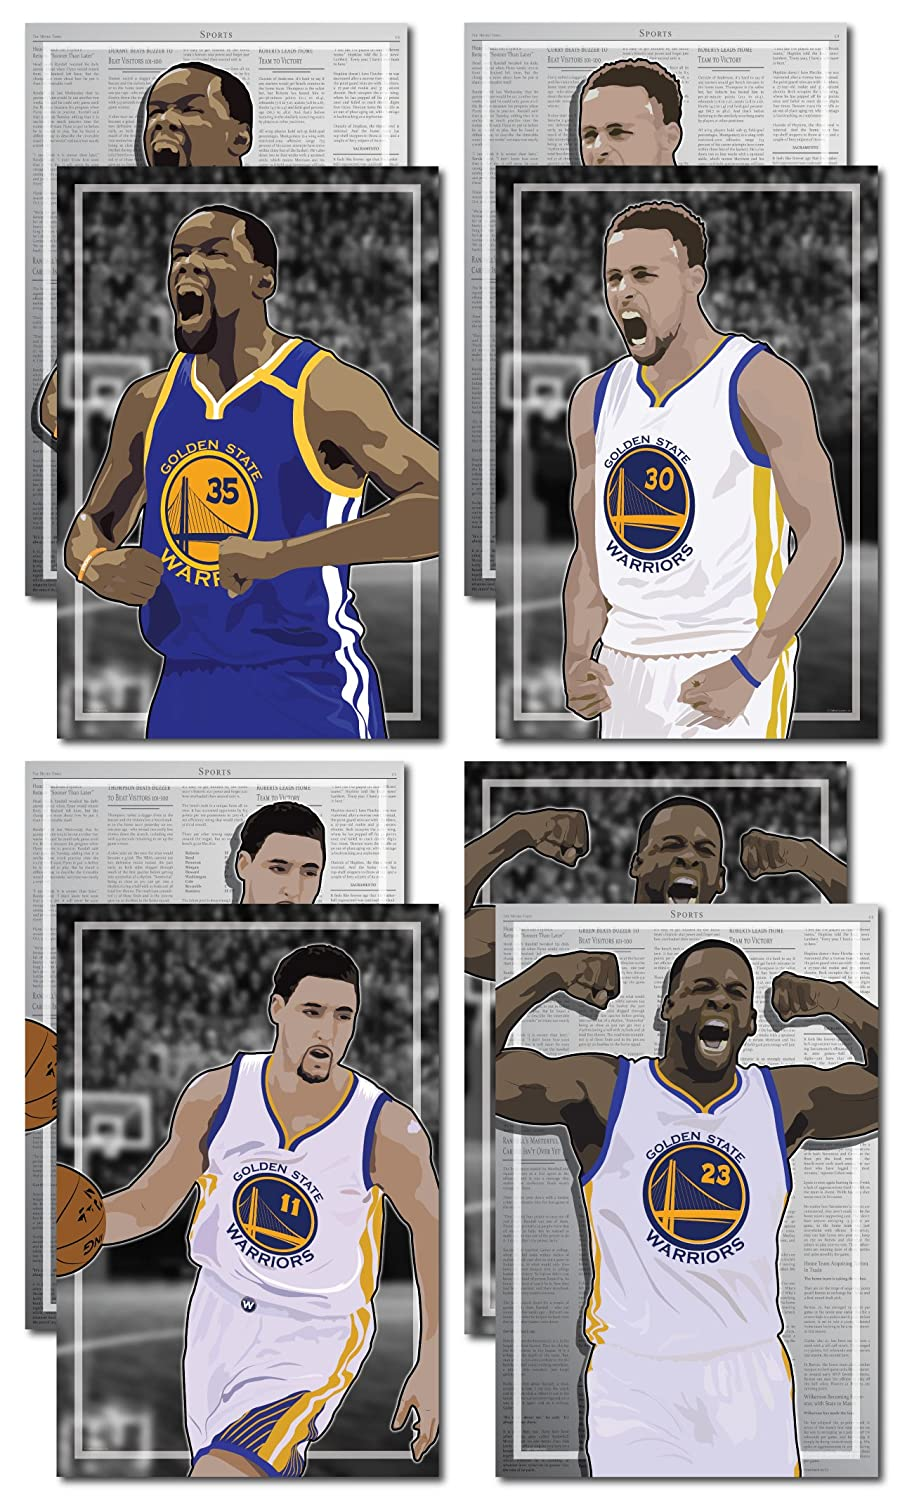 5d1274971a89f 4 Posters of Golden State Warriors - Kevin Durant, Steph Curry, Draymond  Green, Klay Thompson Art Prints - Buy 1 Get 3 Free, 4 total prints  (2-sided) ...